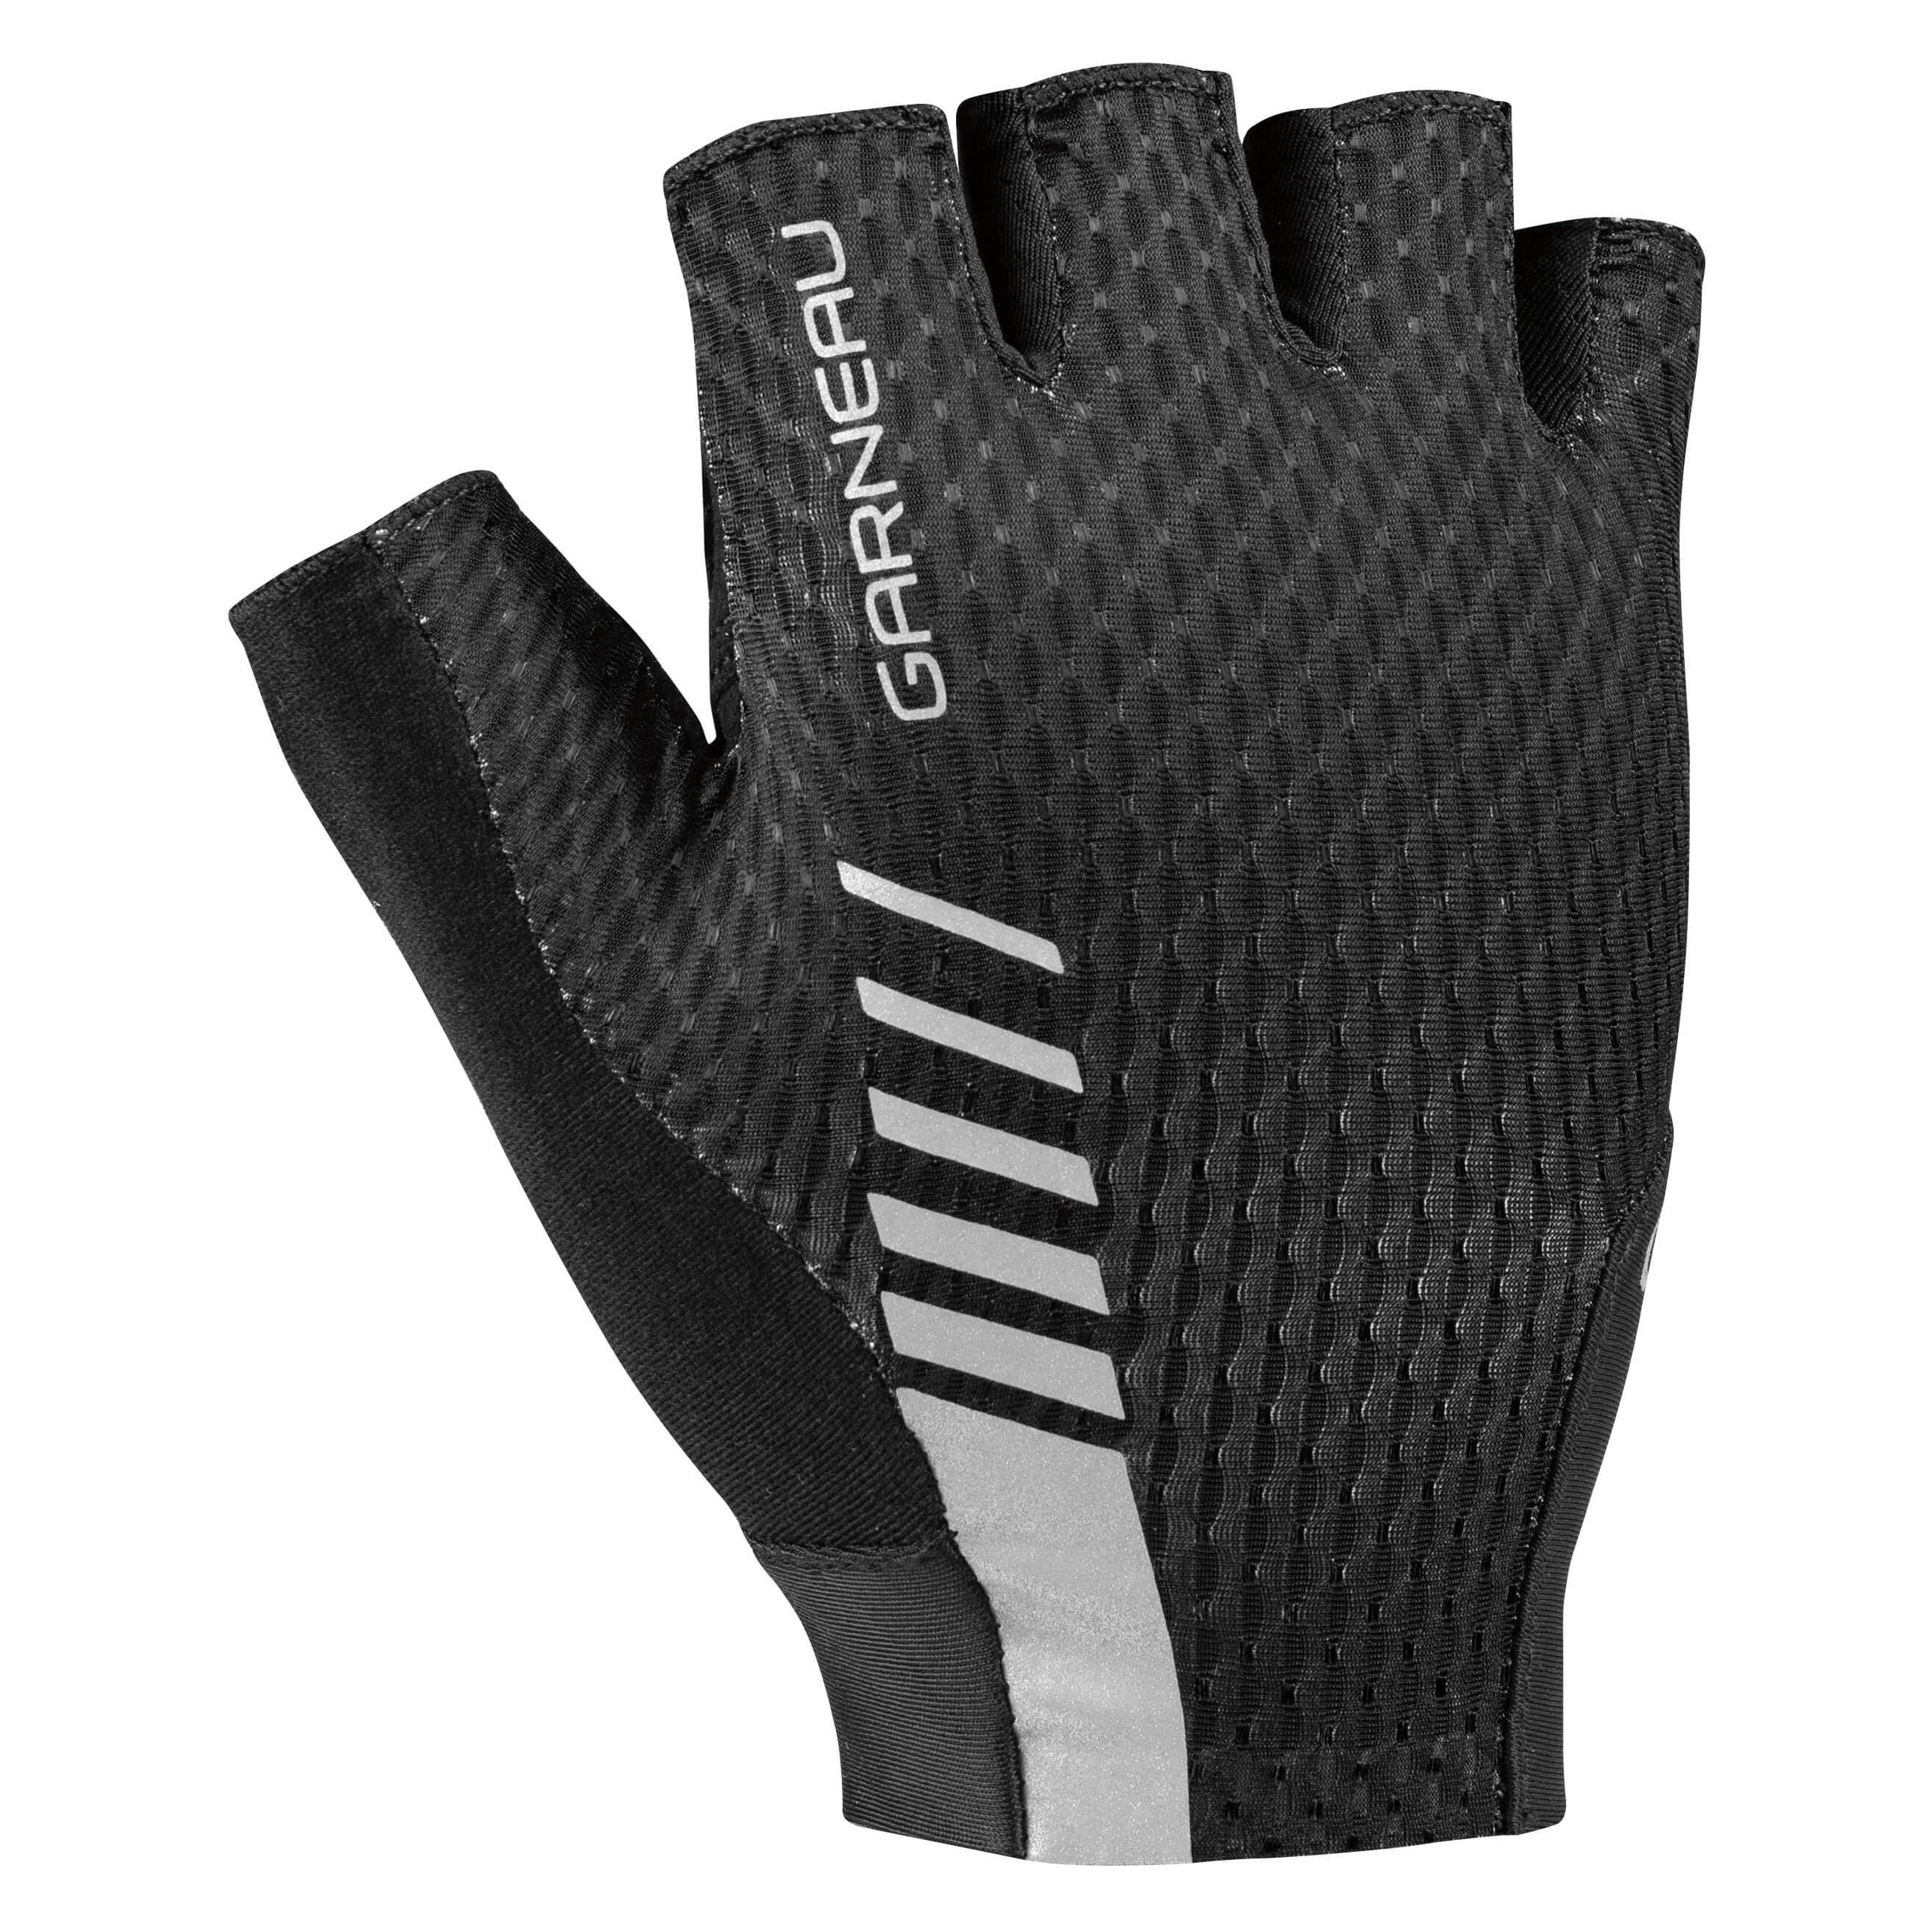 Louis Garneau Women's Mondo Gel Cycling Gloves